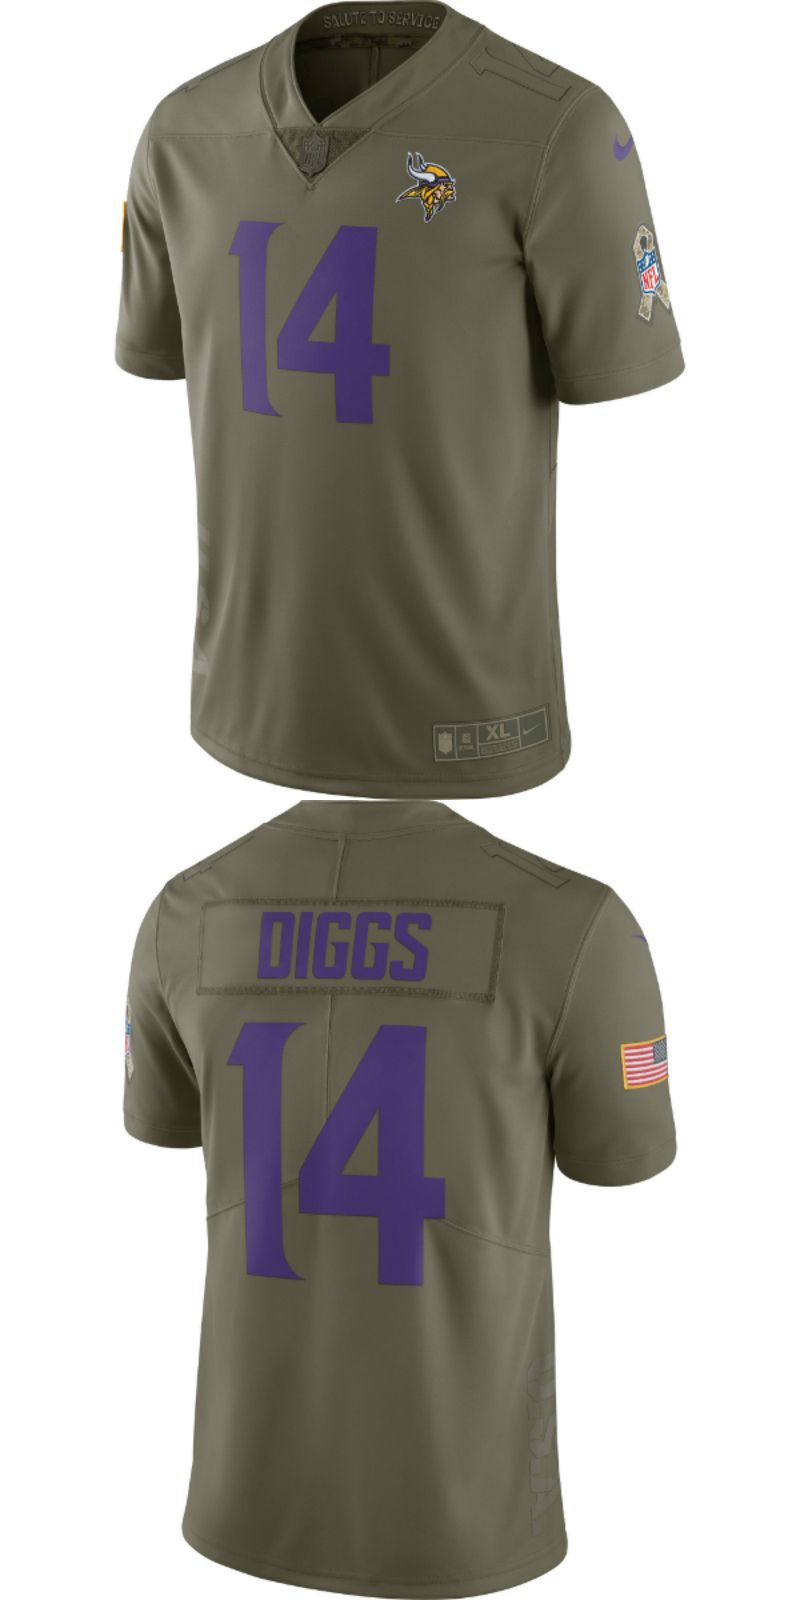 promo code a7035 87f6b UP TO 70% OFF. Stefon Diggs Minnesota Vikings Nike Salute To ...